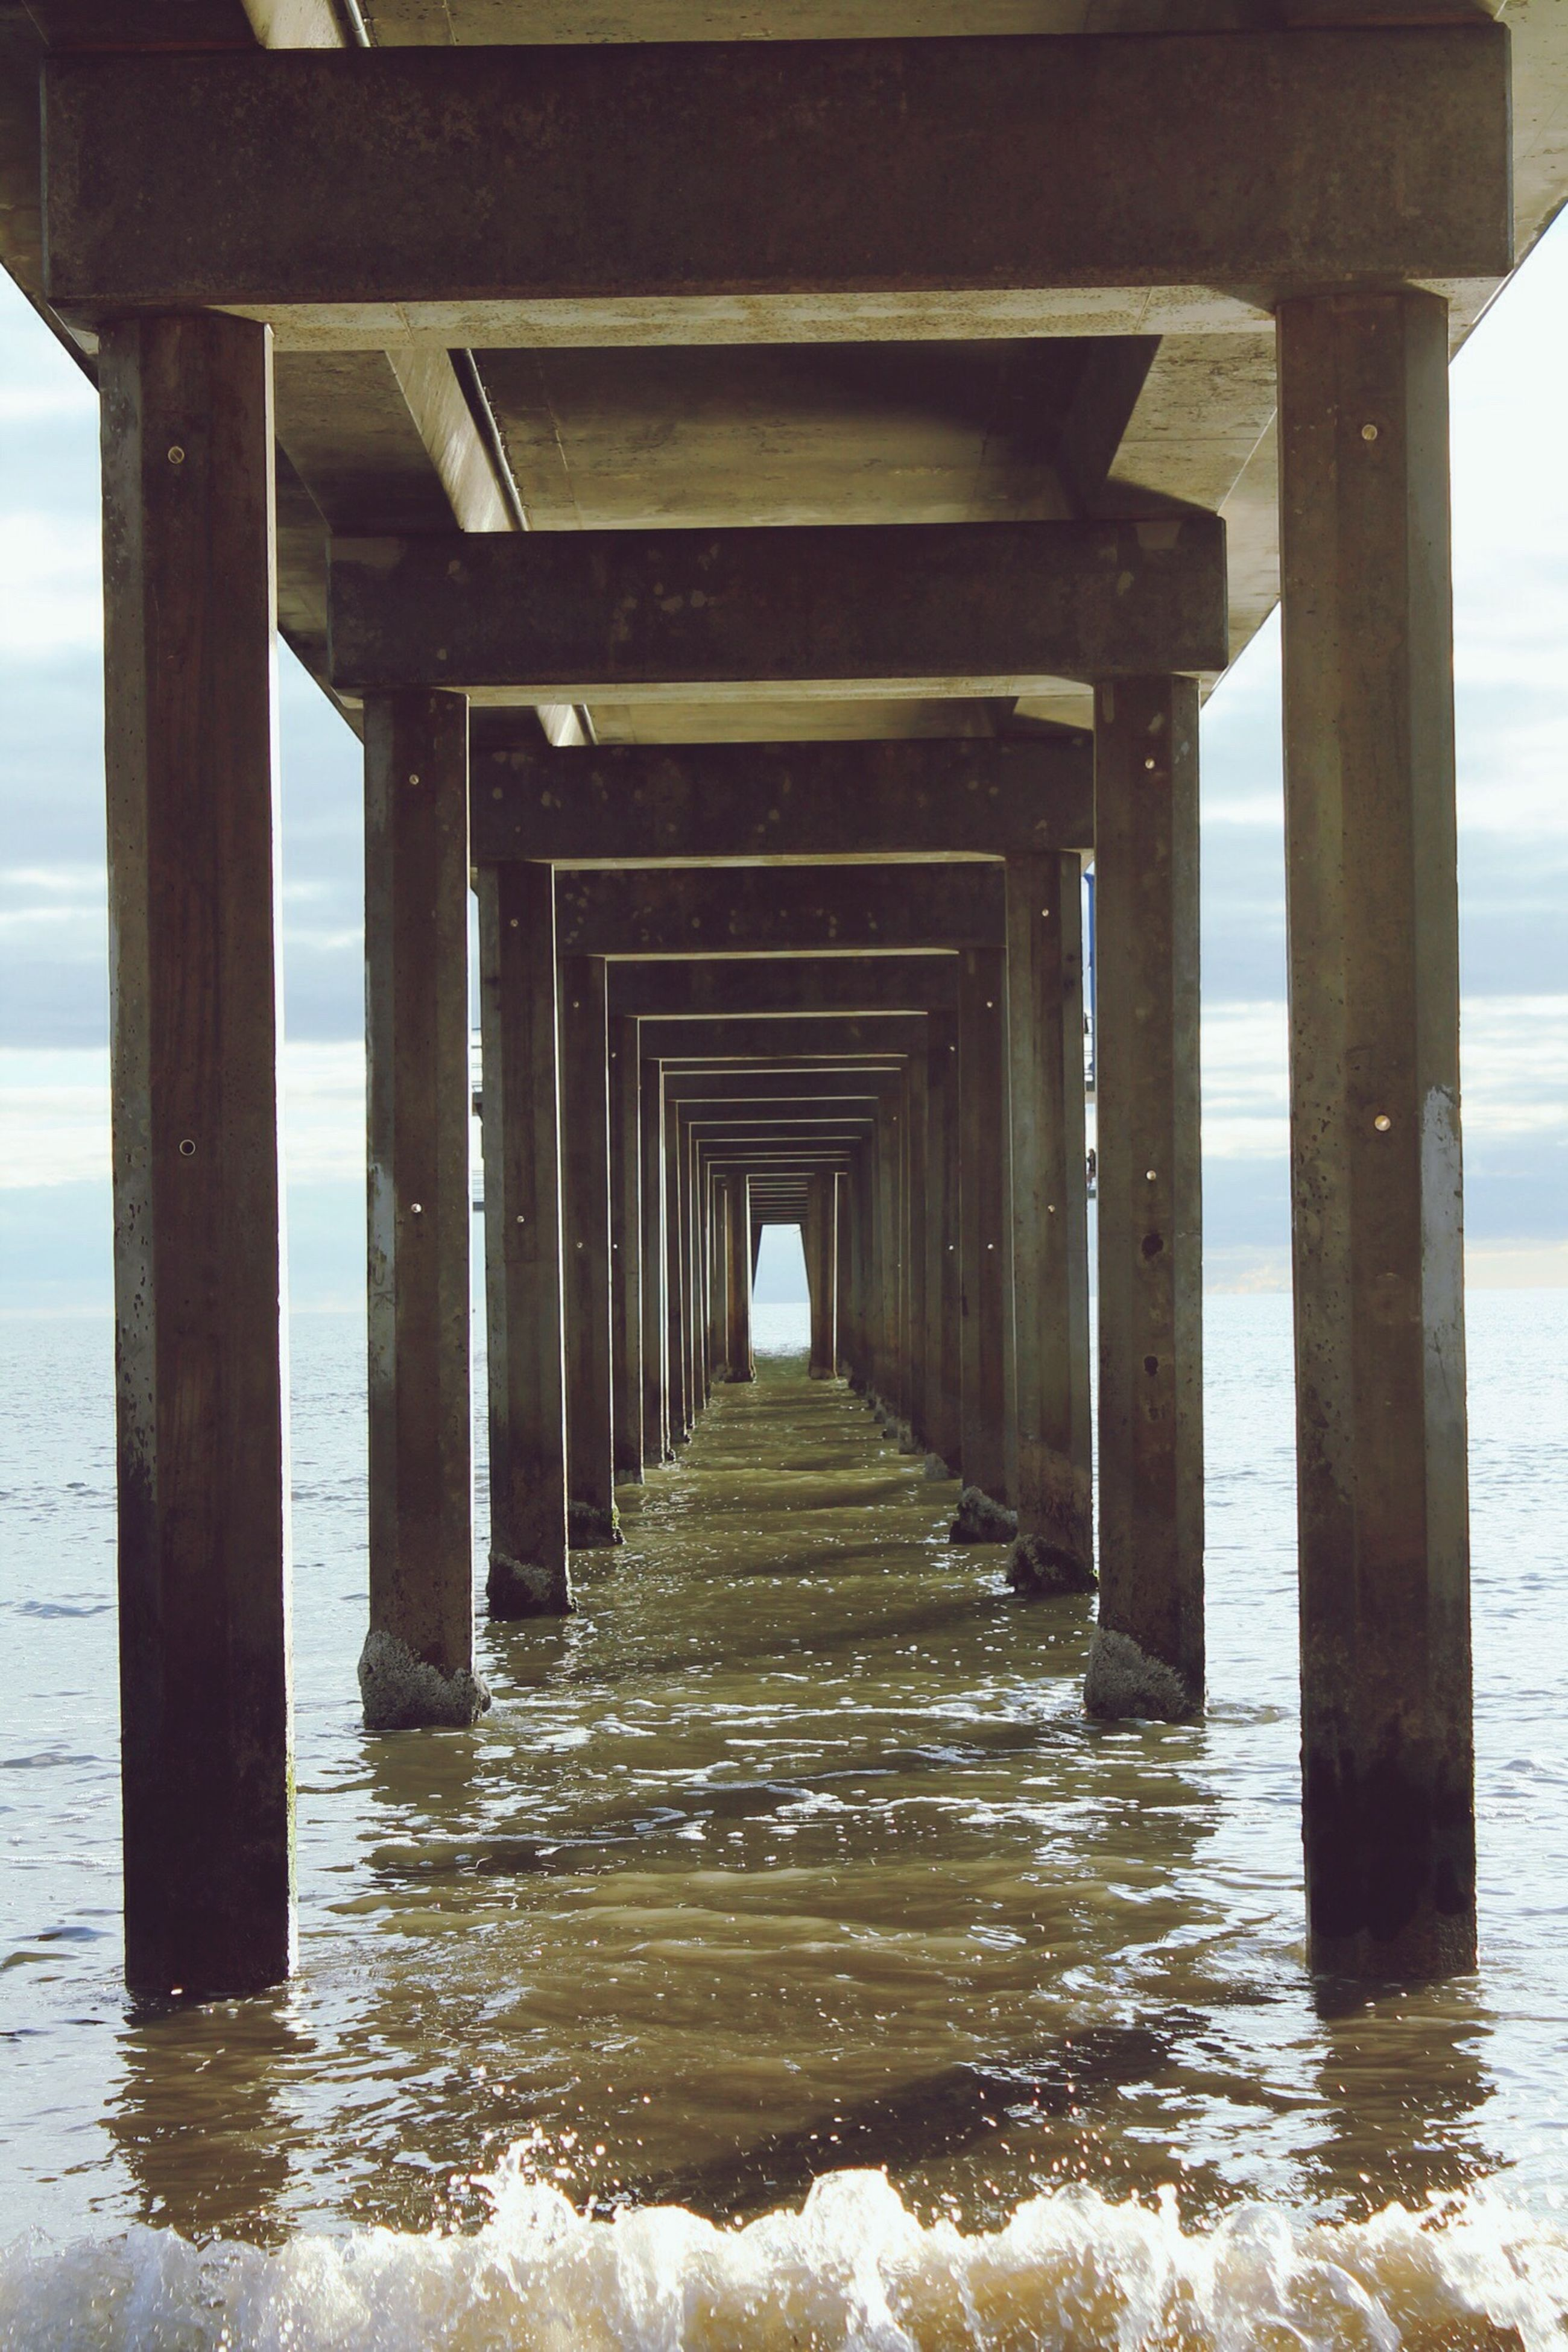 built structure, water, pier, architecture, support, architectural column, connection, in a row, low angle view, below, sea, column, beach, bridge - man made structure, wave, long, underneath, engineering, diminishing perspective, shore, day, supported, nature, bridge, the way forward, tranquil scene, no people, vanishing point, tranquility, scenics